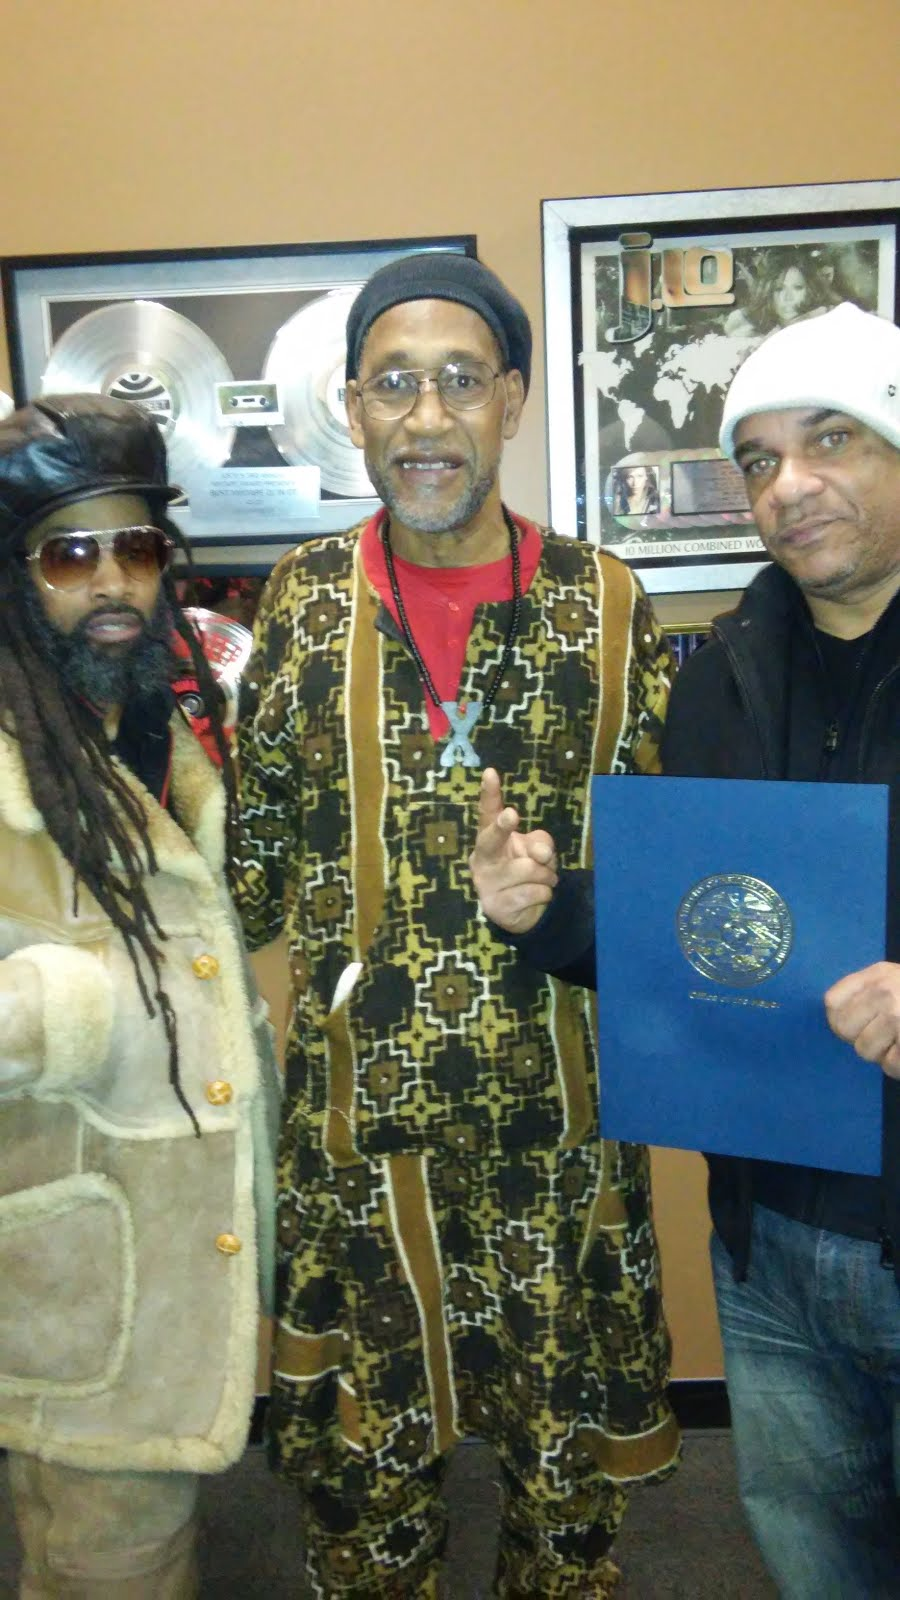 Godfather of HipHop Kool Herc, MC Jim Slice & Fresh Dre